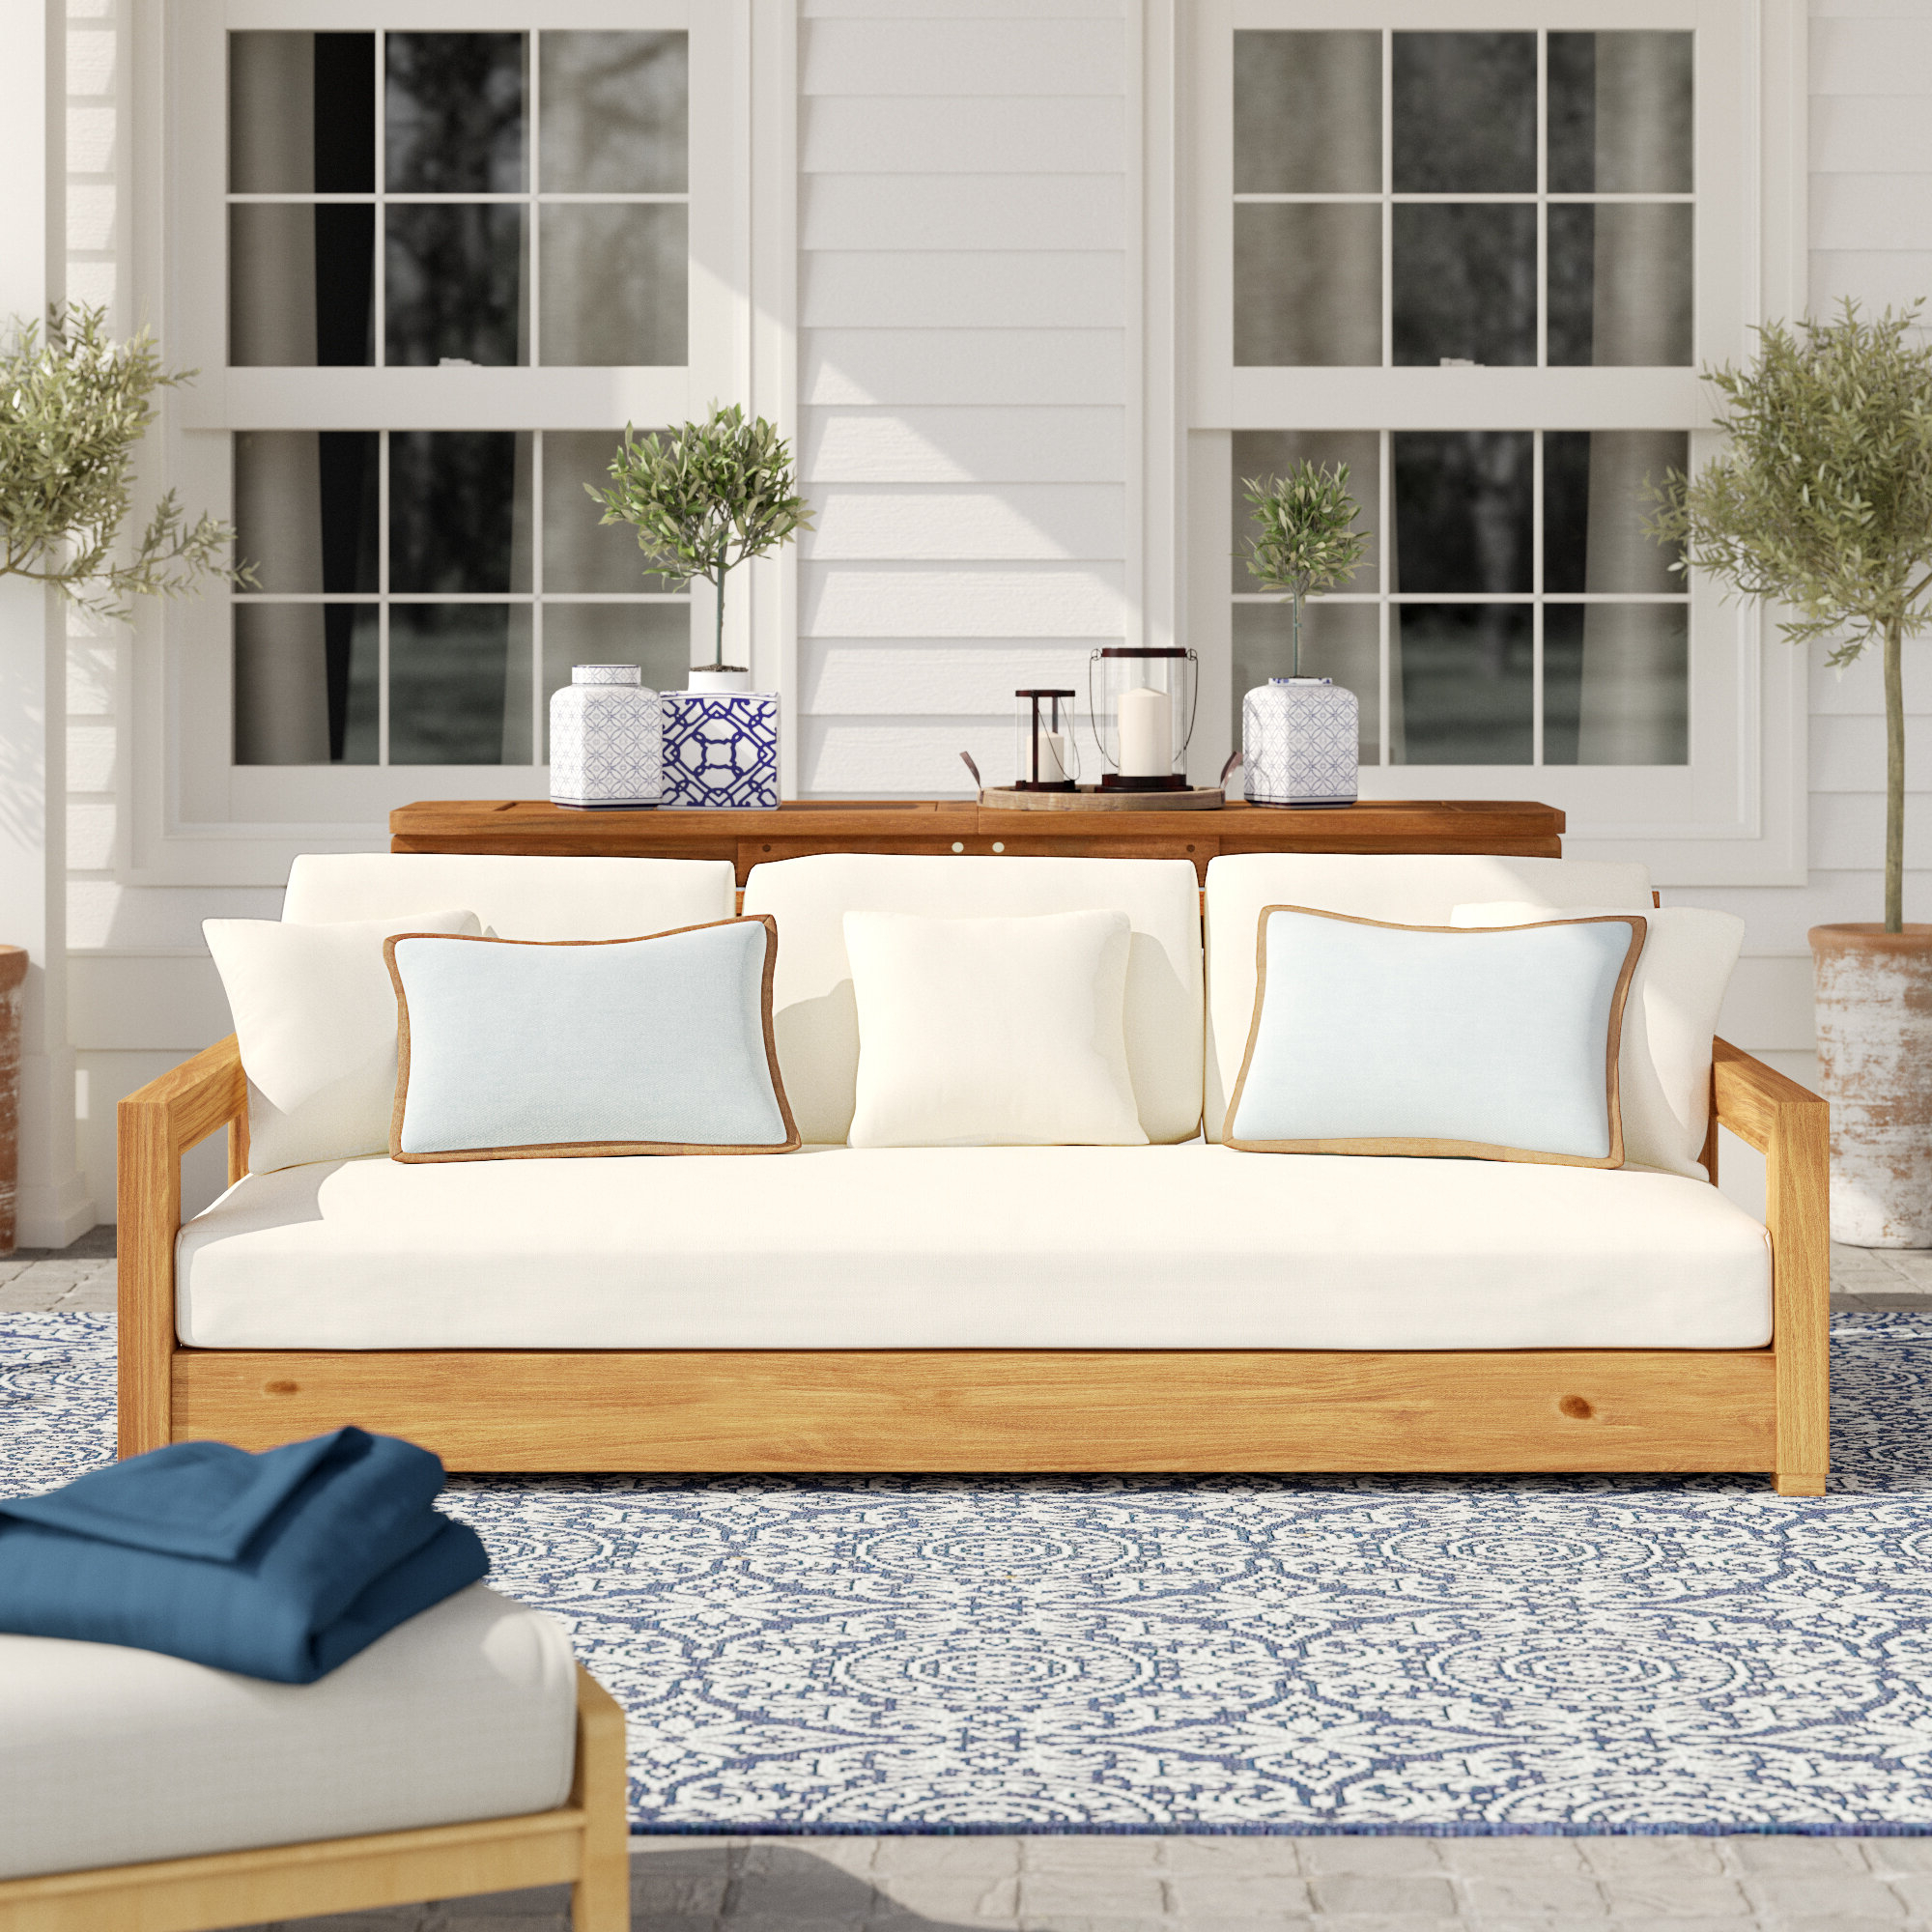 Farmhouse & Rustic Teak Outdoor Sofas (View 15 of 20)